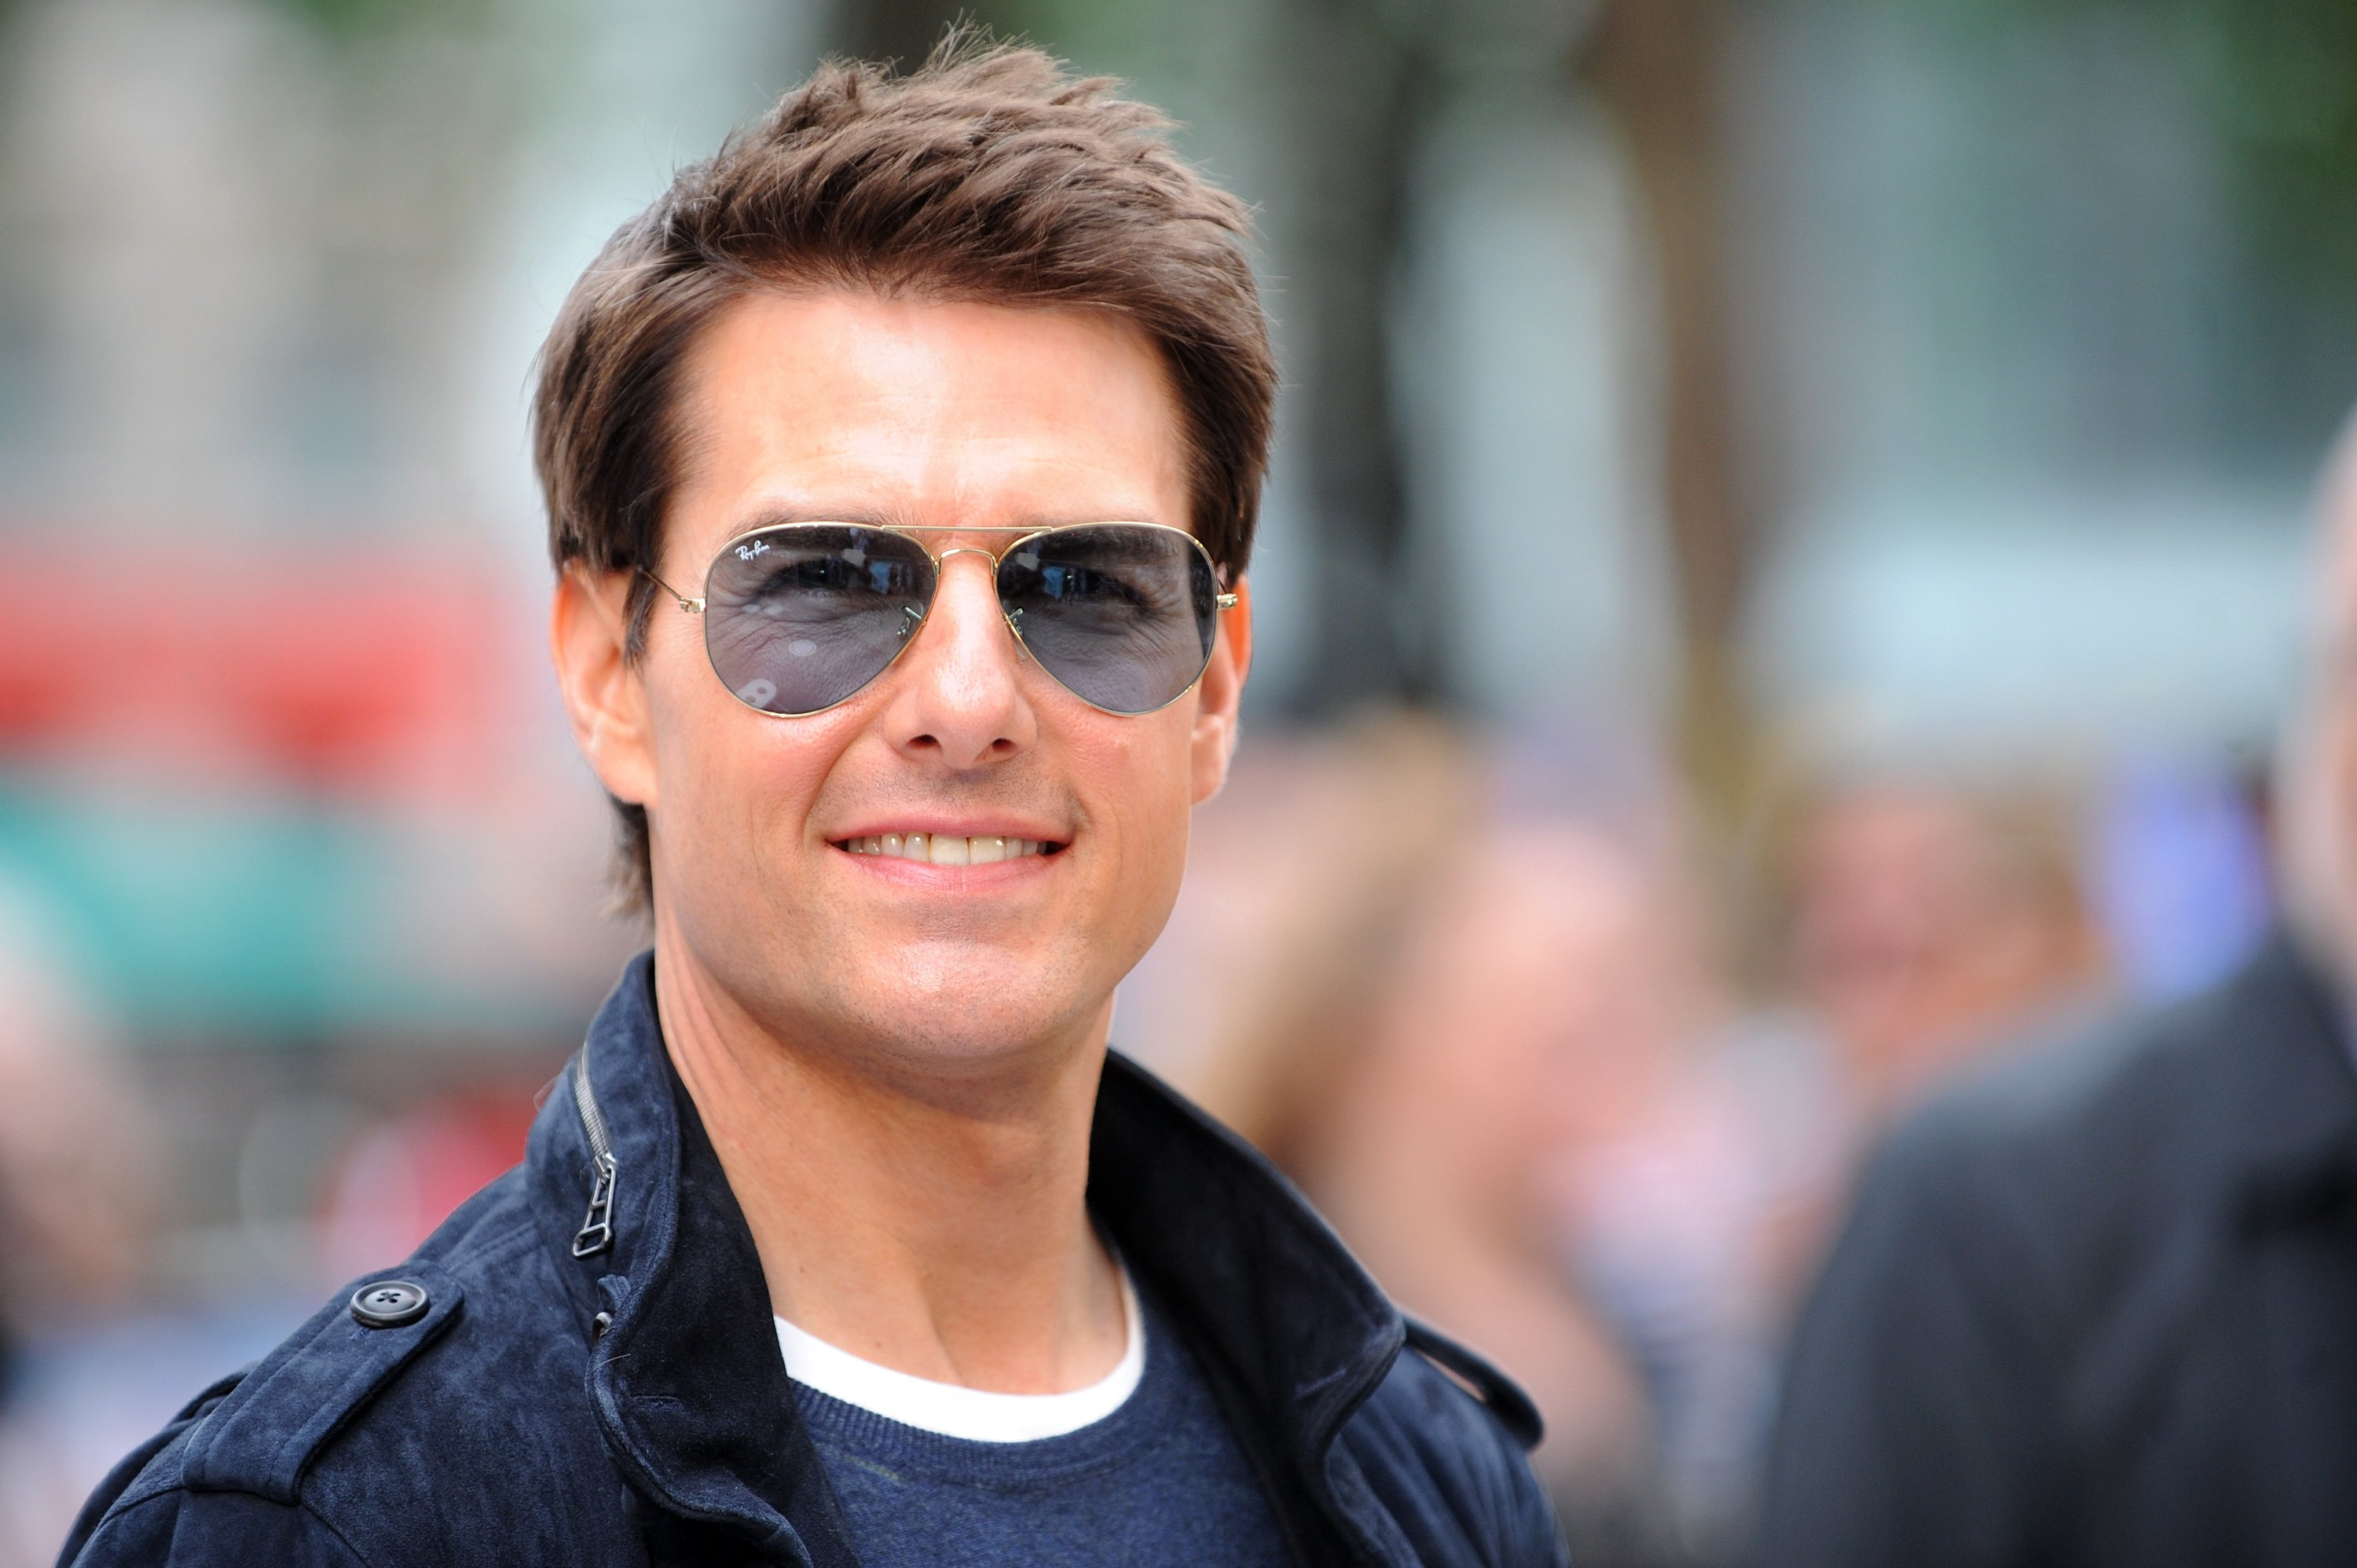 """Tom Cruise attends the premiere of """"Rock Of Ages"""" at Odeon Leicester Square on June 10, 2012. 